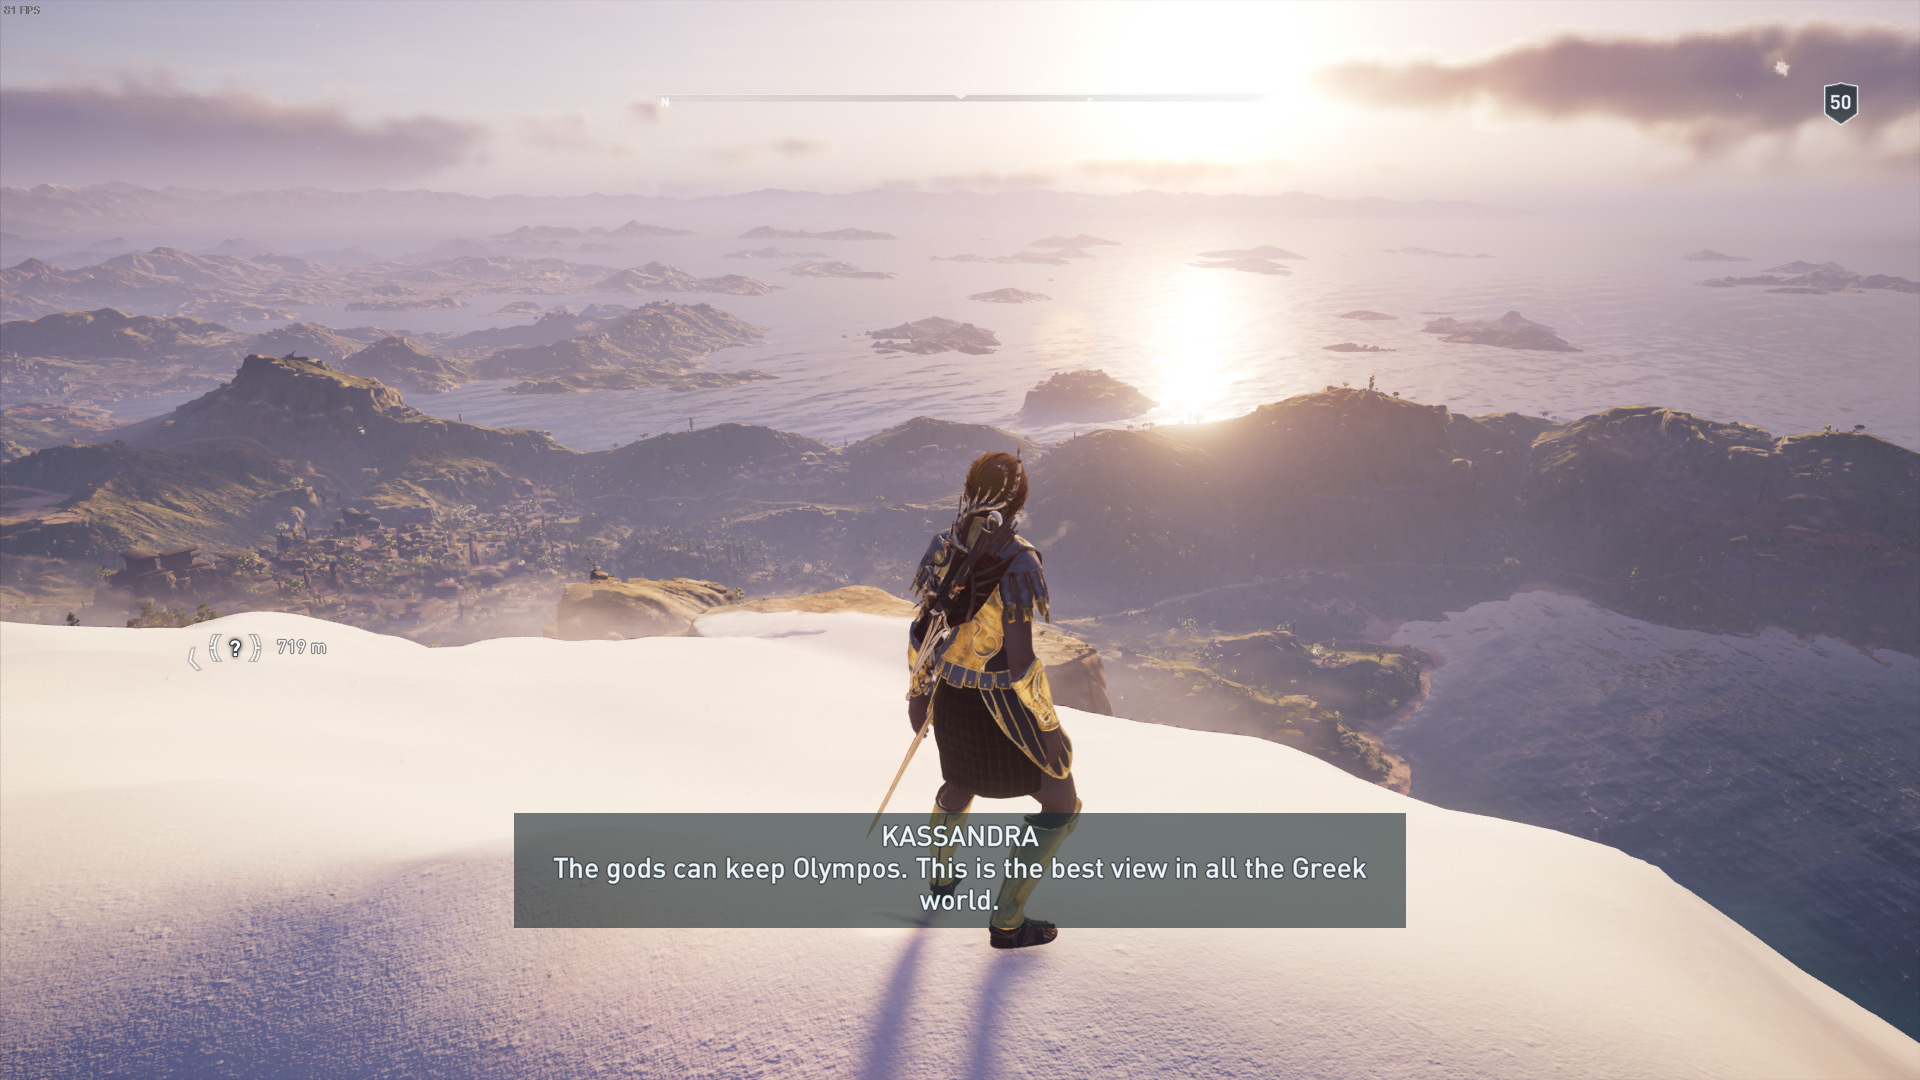 Checking view distance on the tallest peaks in AC Odyssey.